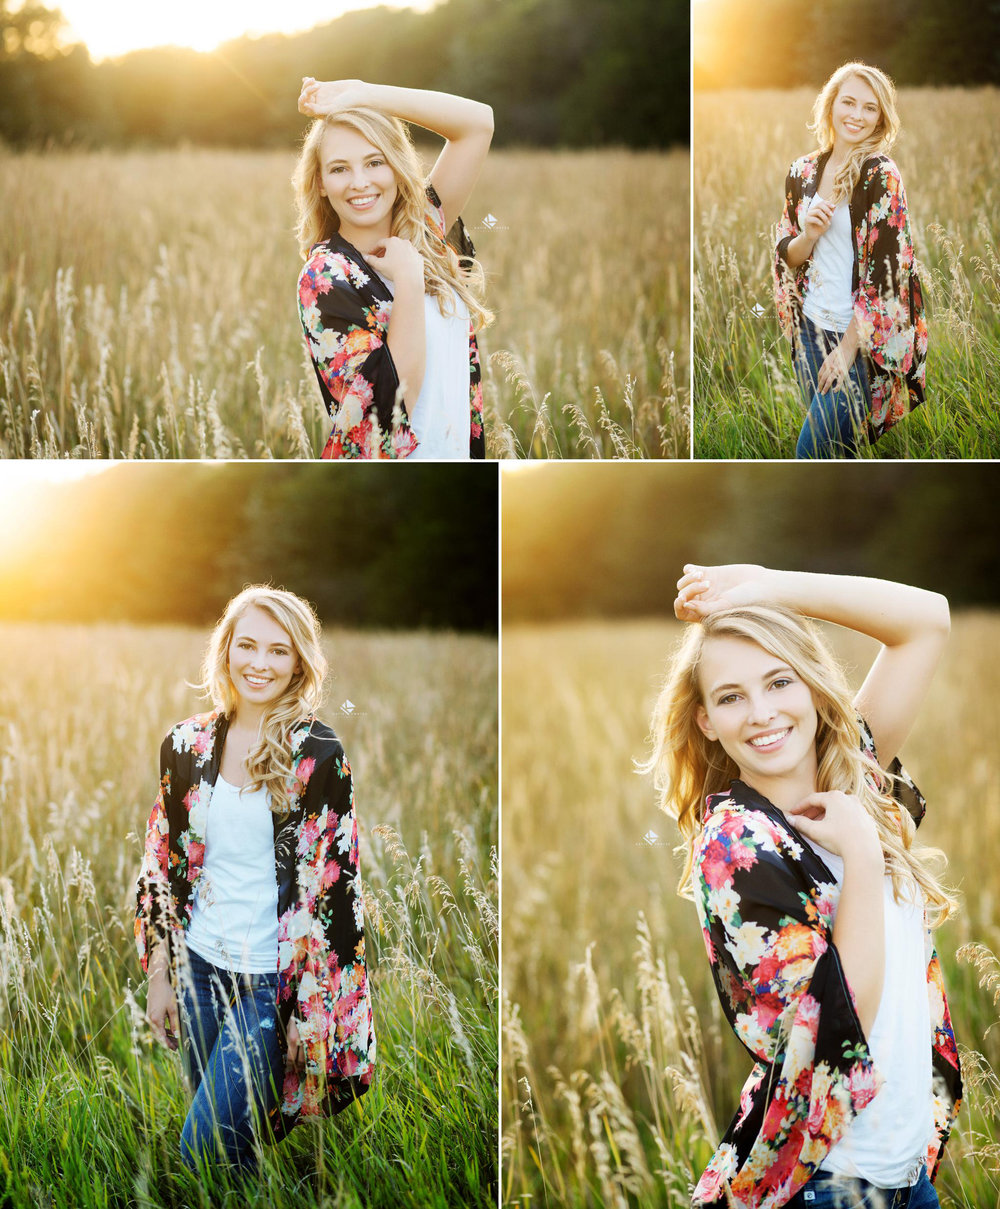 Country Senior Images by Katie Swatek Photography | Kimono Senior Images by Katie Swatek Photography